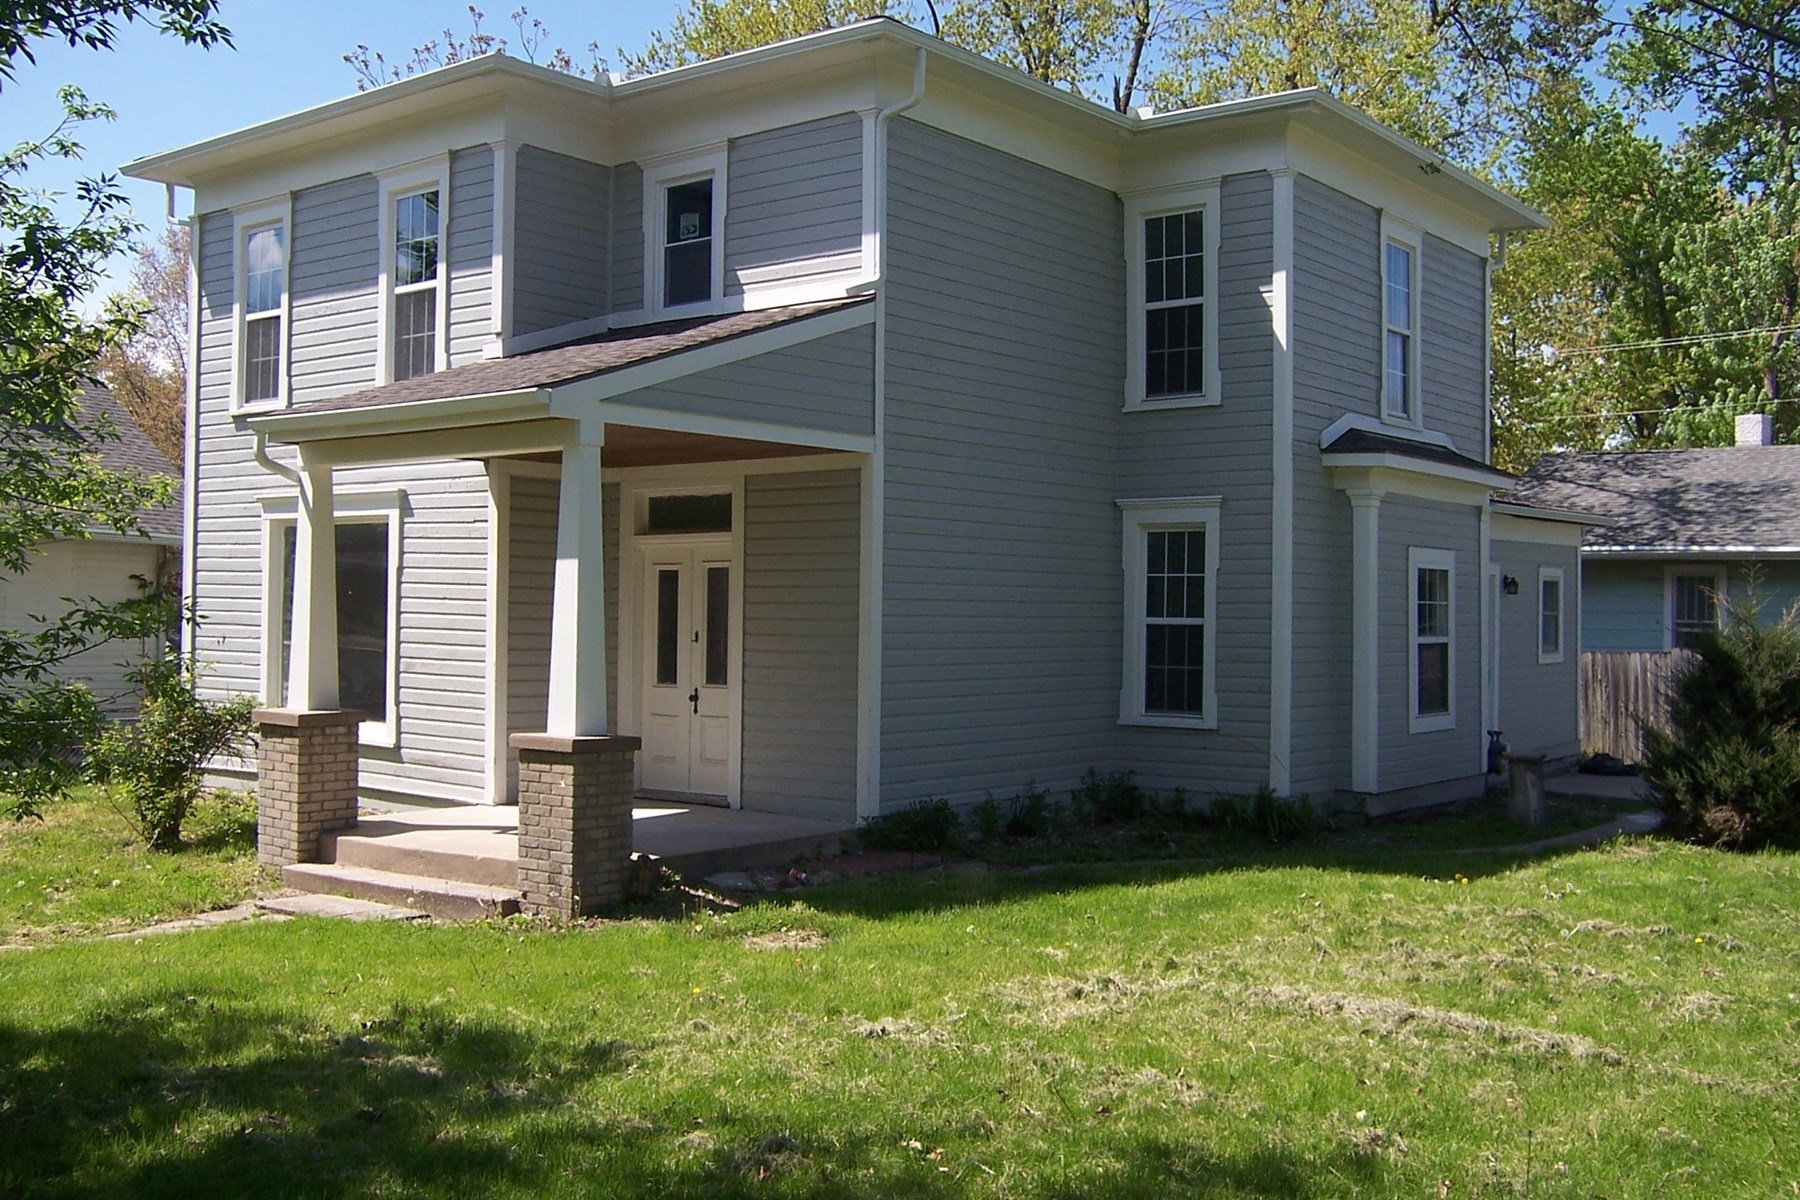 UPDATED 2 STORY IN CAMERON MO FOR SALE